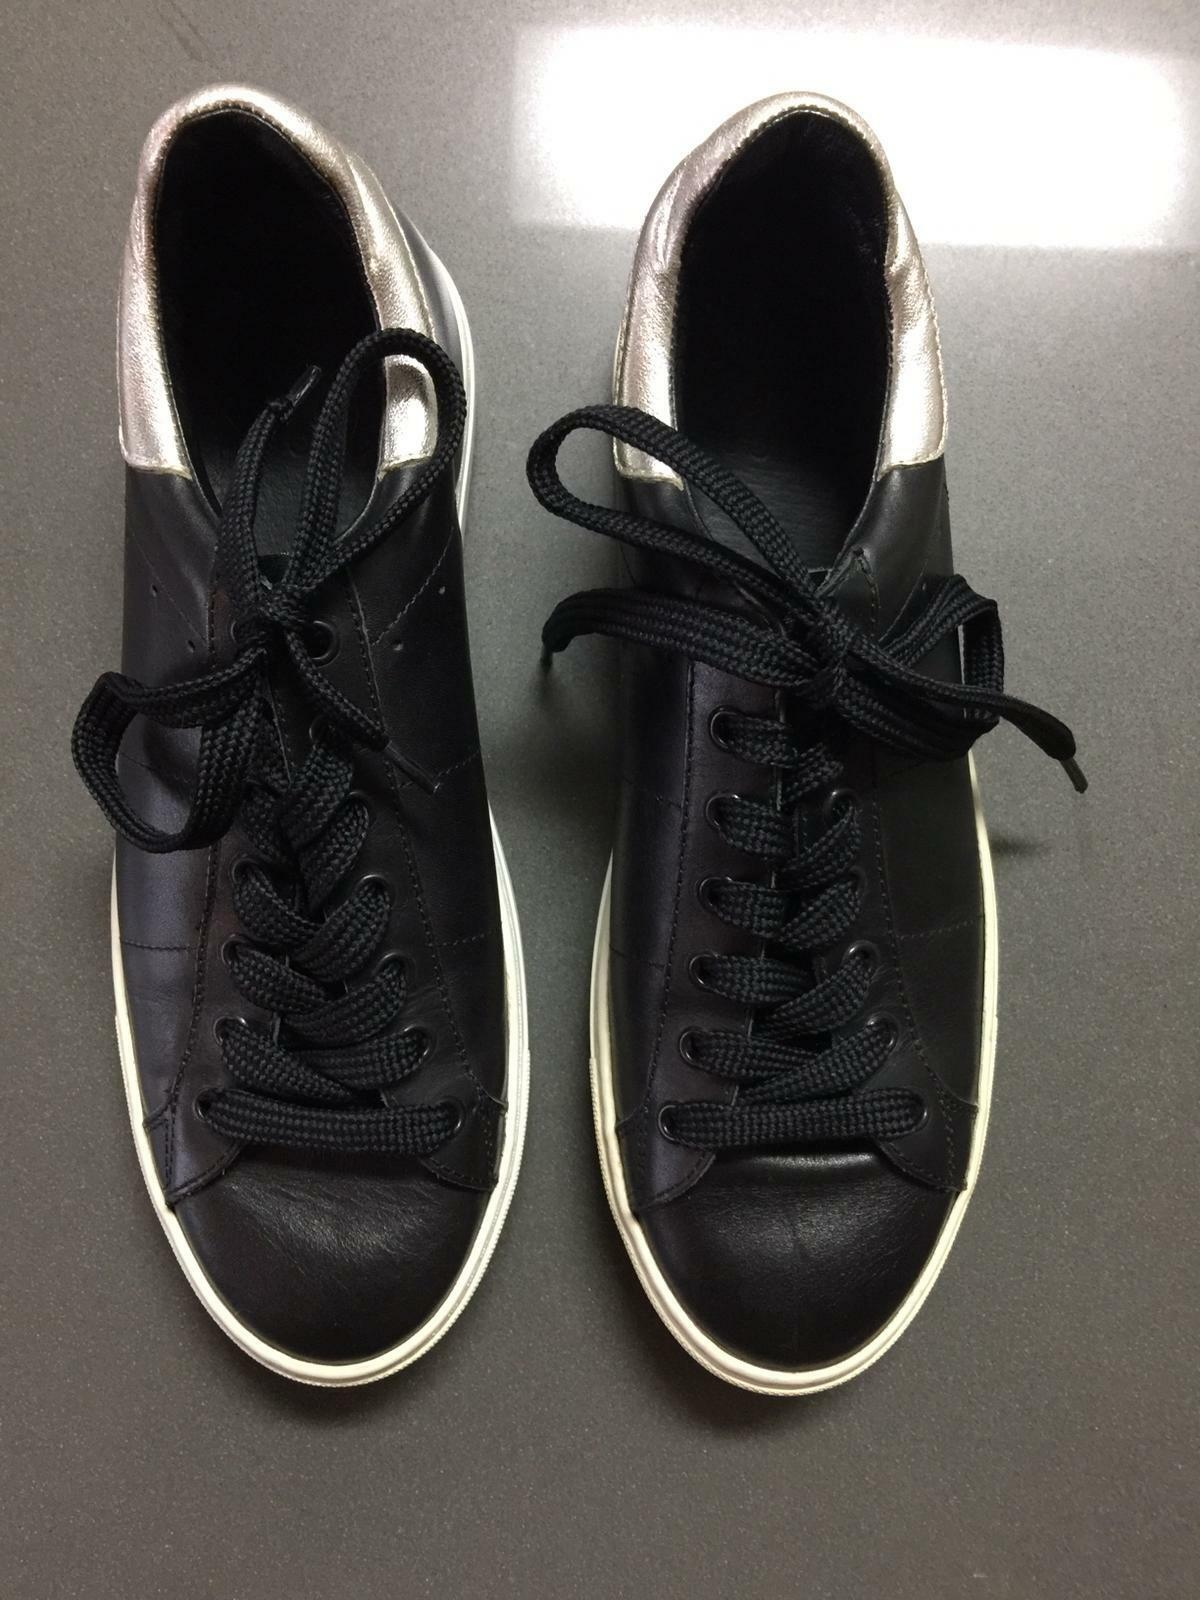 IRO brand new Black Leather sneakers trainers Unisex Size Eur 40 classic shoe